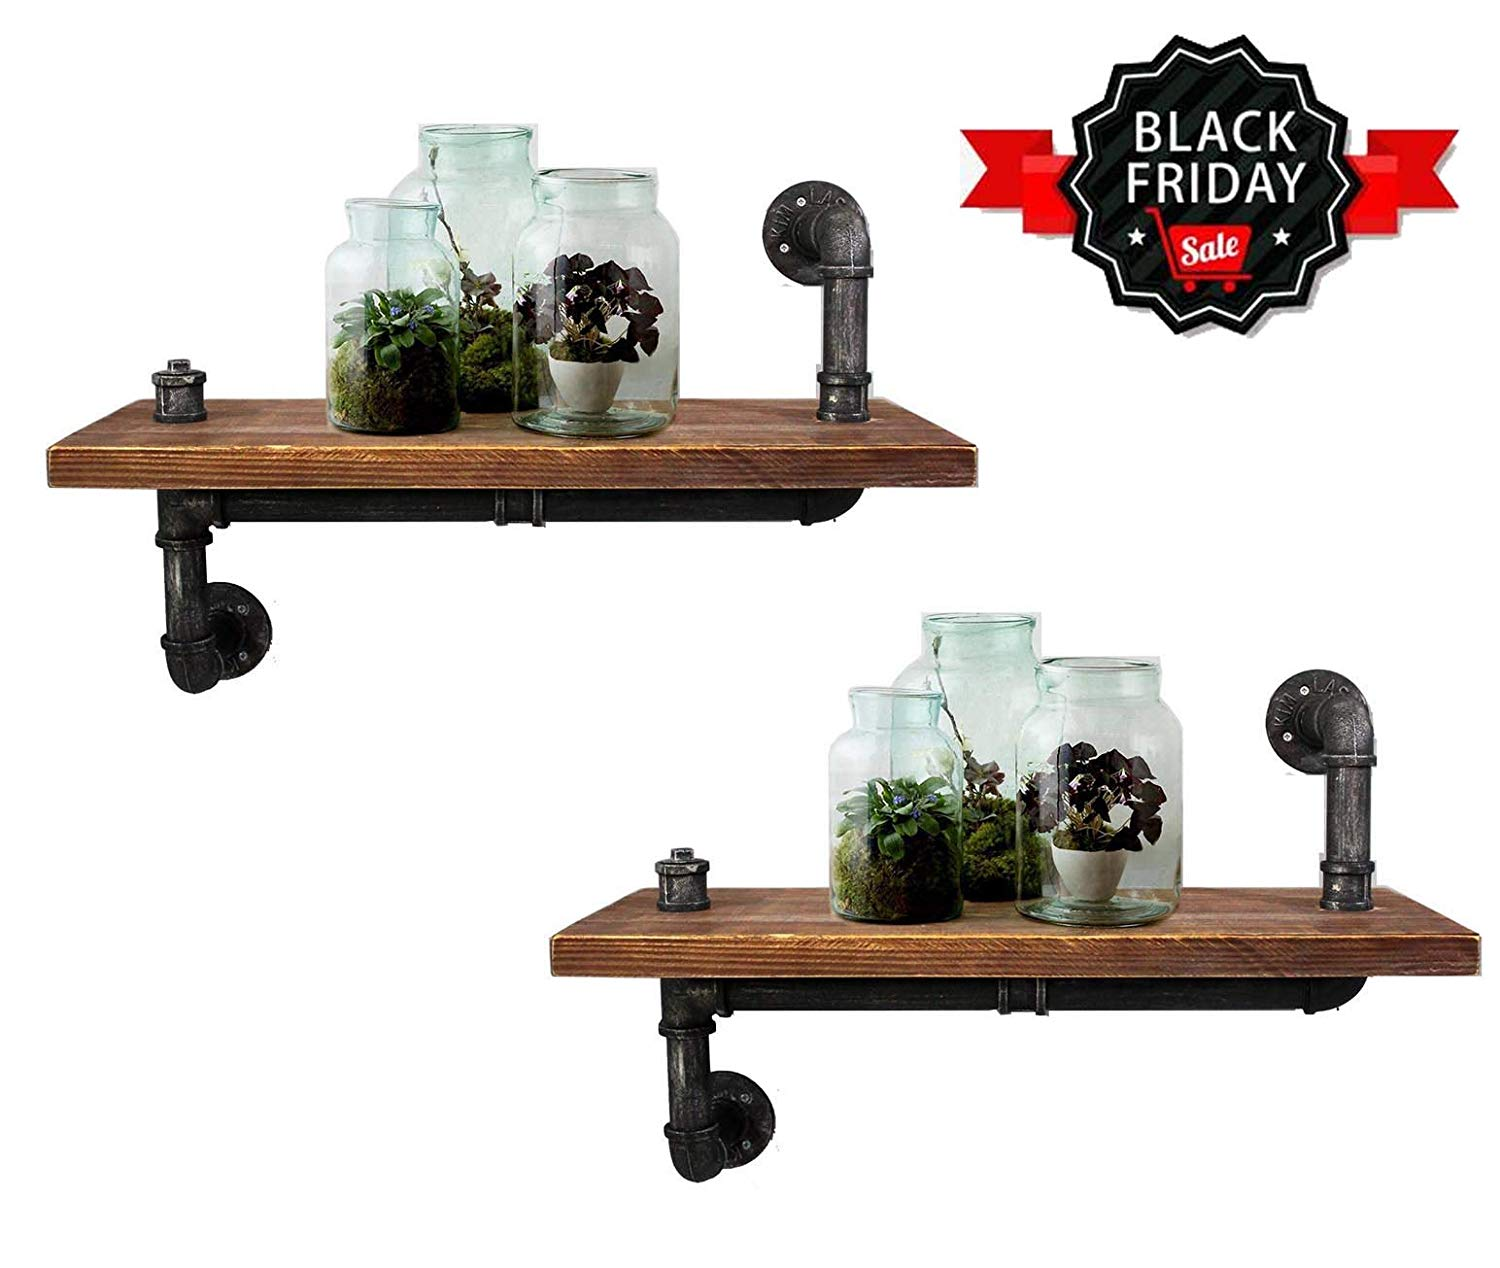 lokkhan set inch industrial pipe shelving floating shelves black friday bookshelf rustic wall mounted shelf vintage home decorative wood open closet systems work brackets french